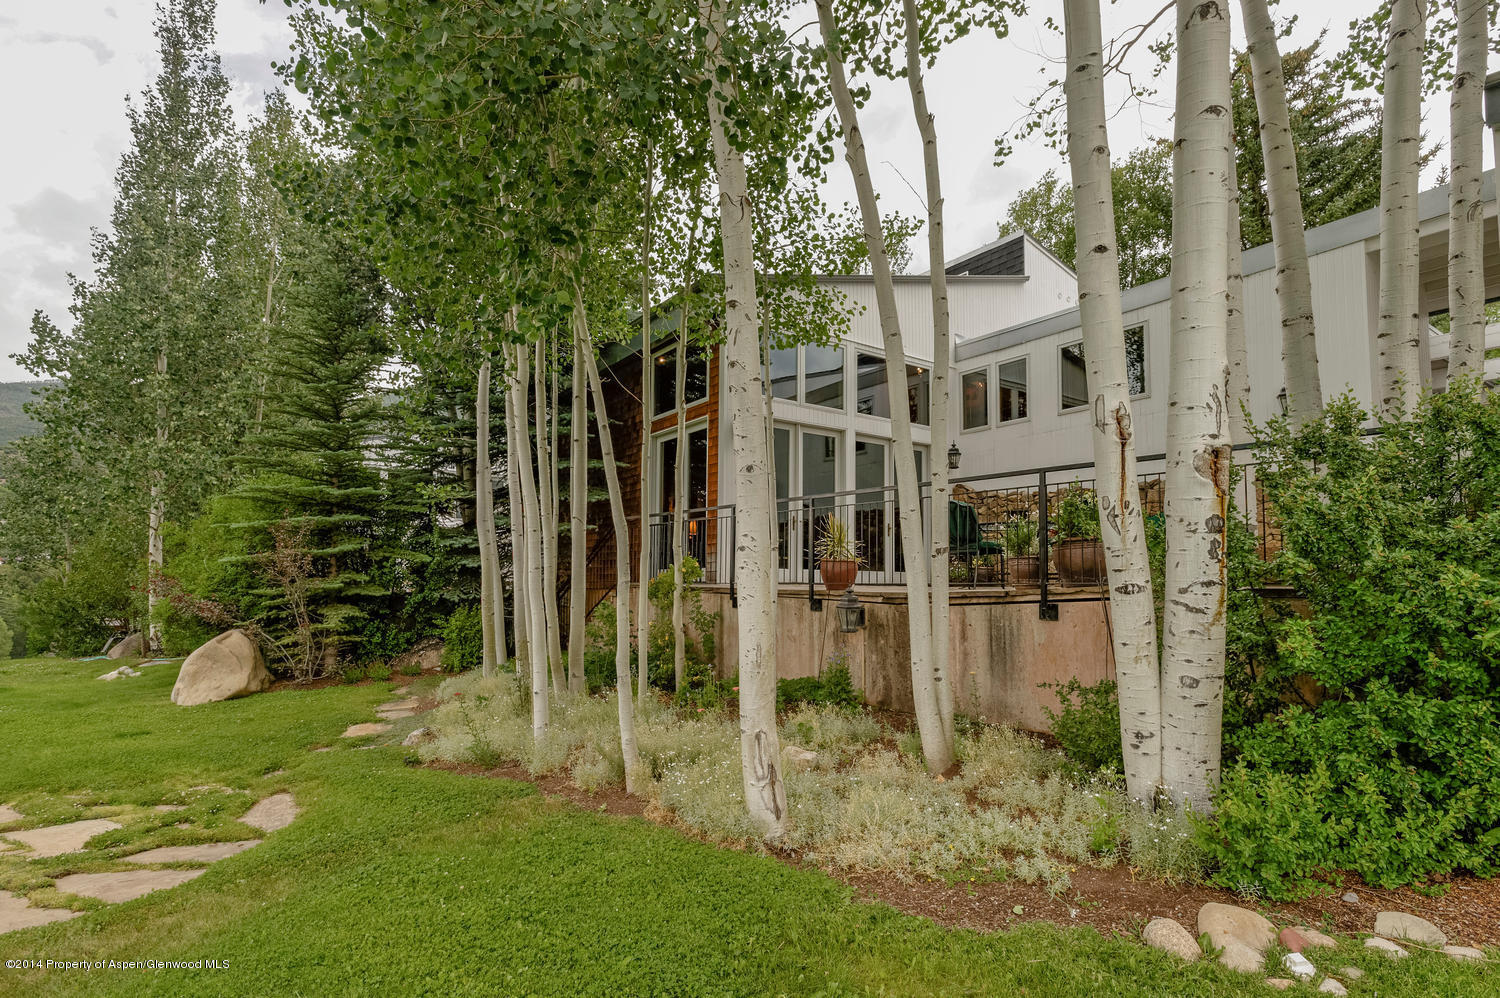 61 Meadows Road - Aspen, Colorado